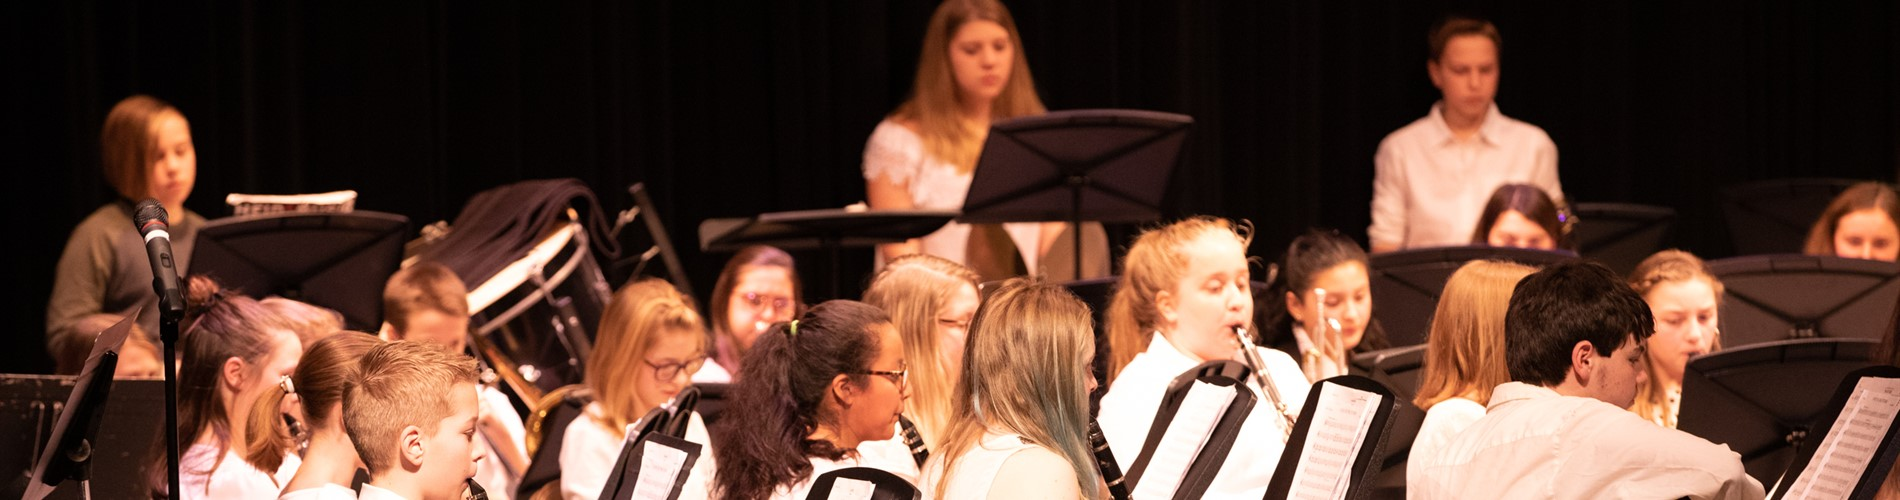 Band Winter Concert Performance